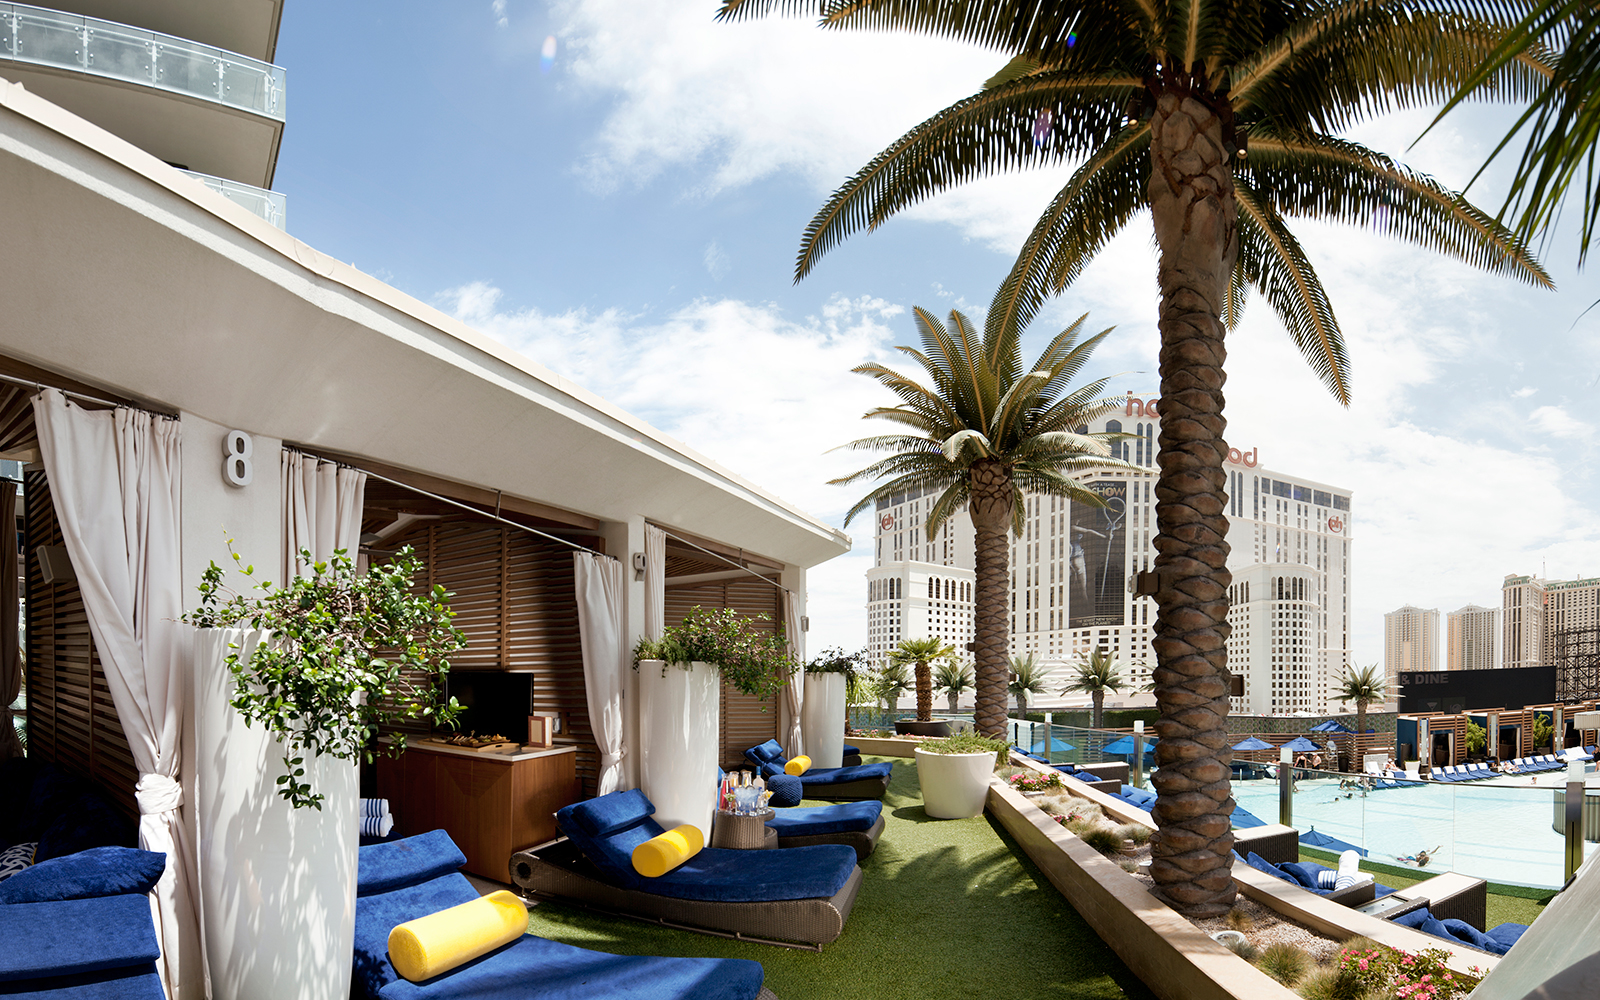 Boulevard Pool, The Cosmopolitan of Las Vegas